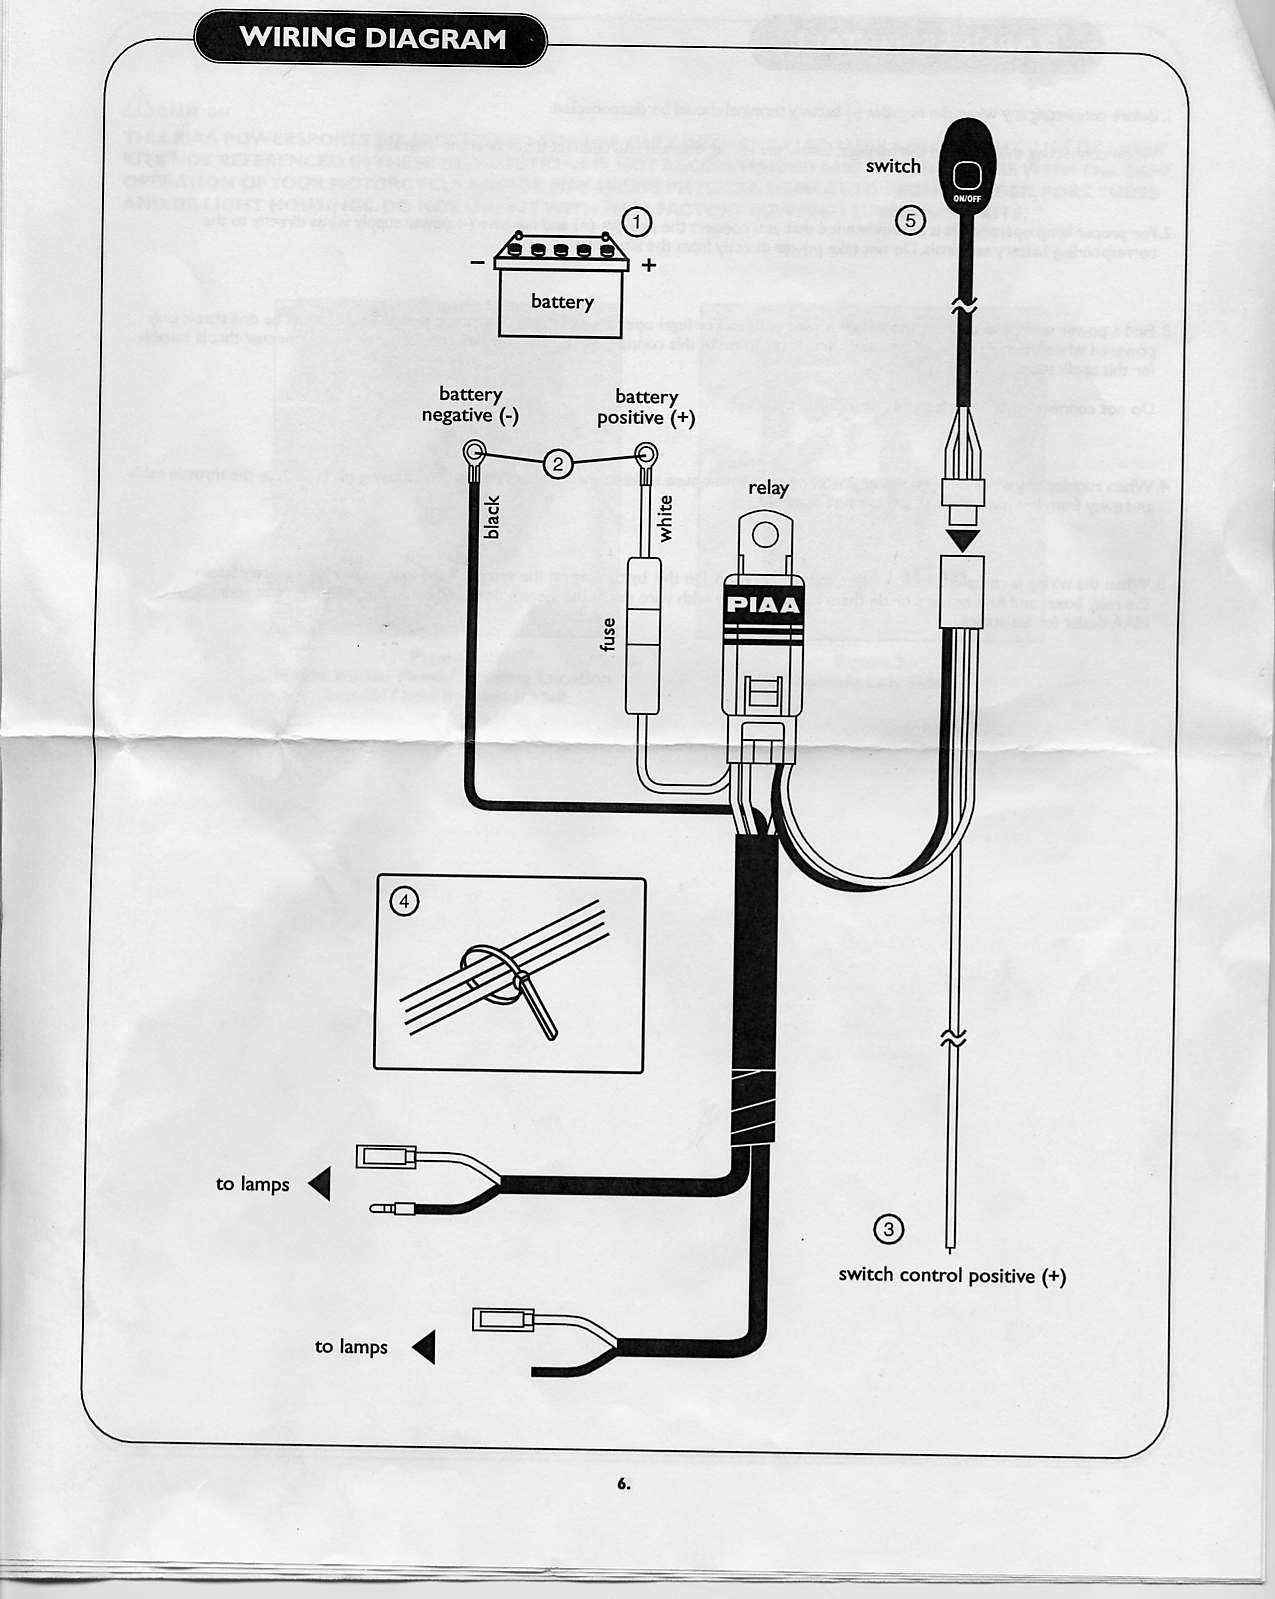 23954 piaa lights piaa wiring diagram loose wire with burnt end serious? bmw luxury touring community piaa wiring harness instructions at soozxer.org